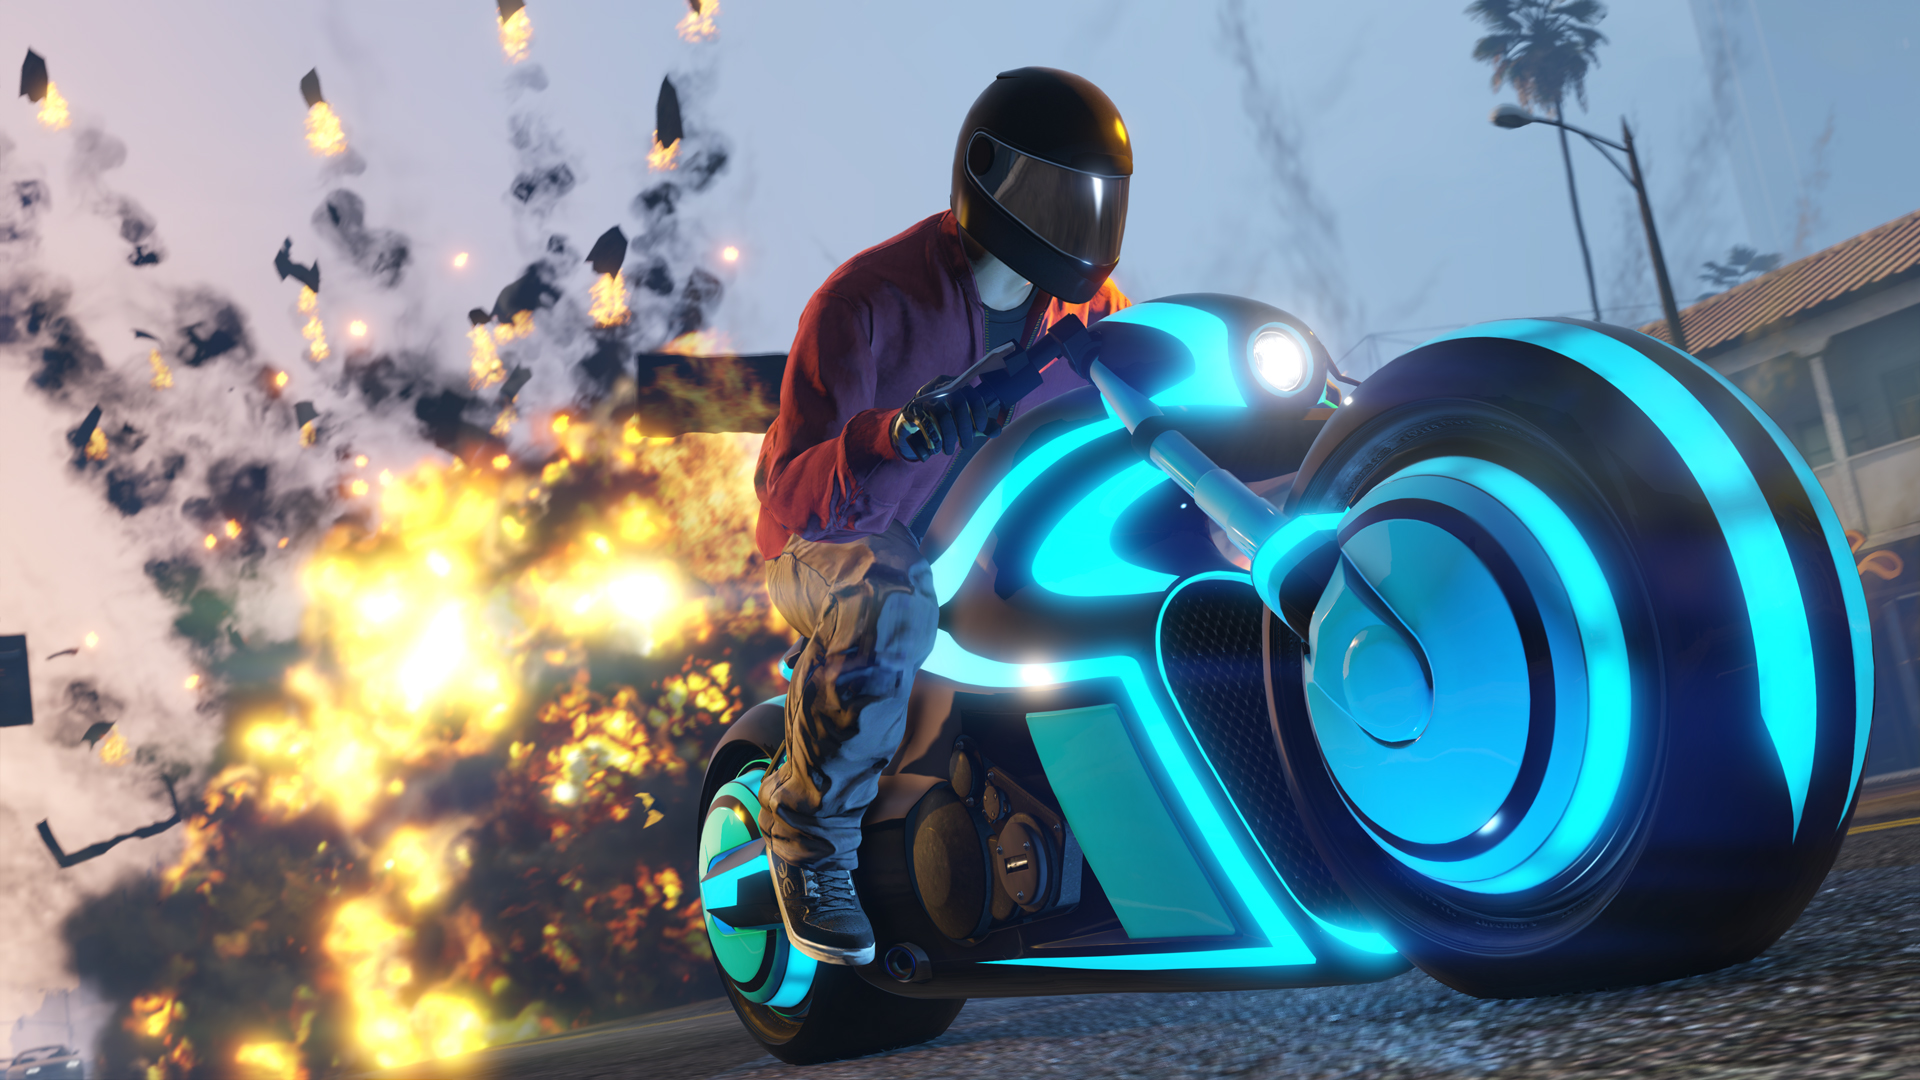 Sign in to GTA Online this week and next to get $250,000 of free GTA